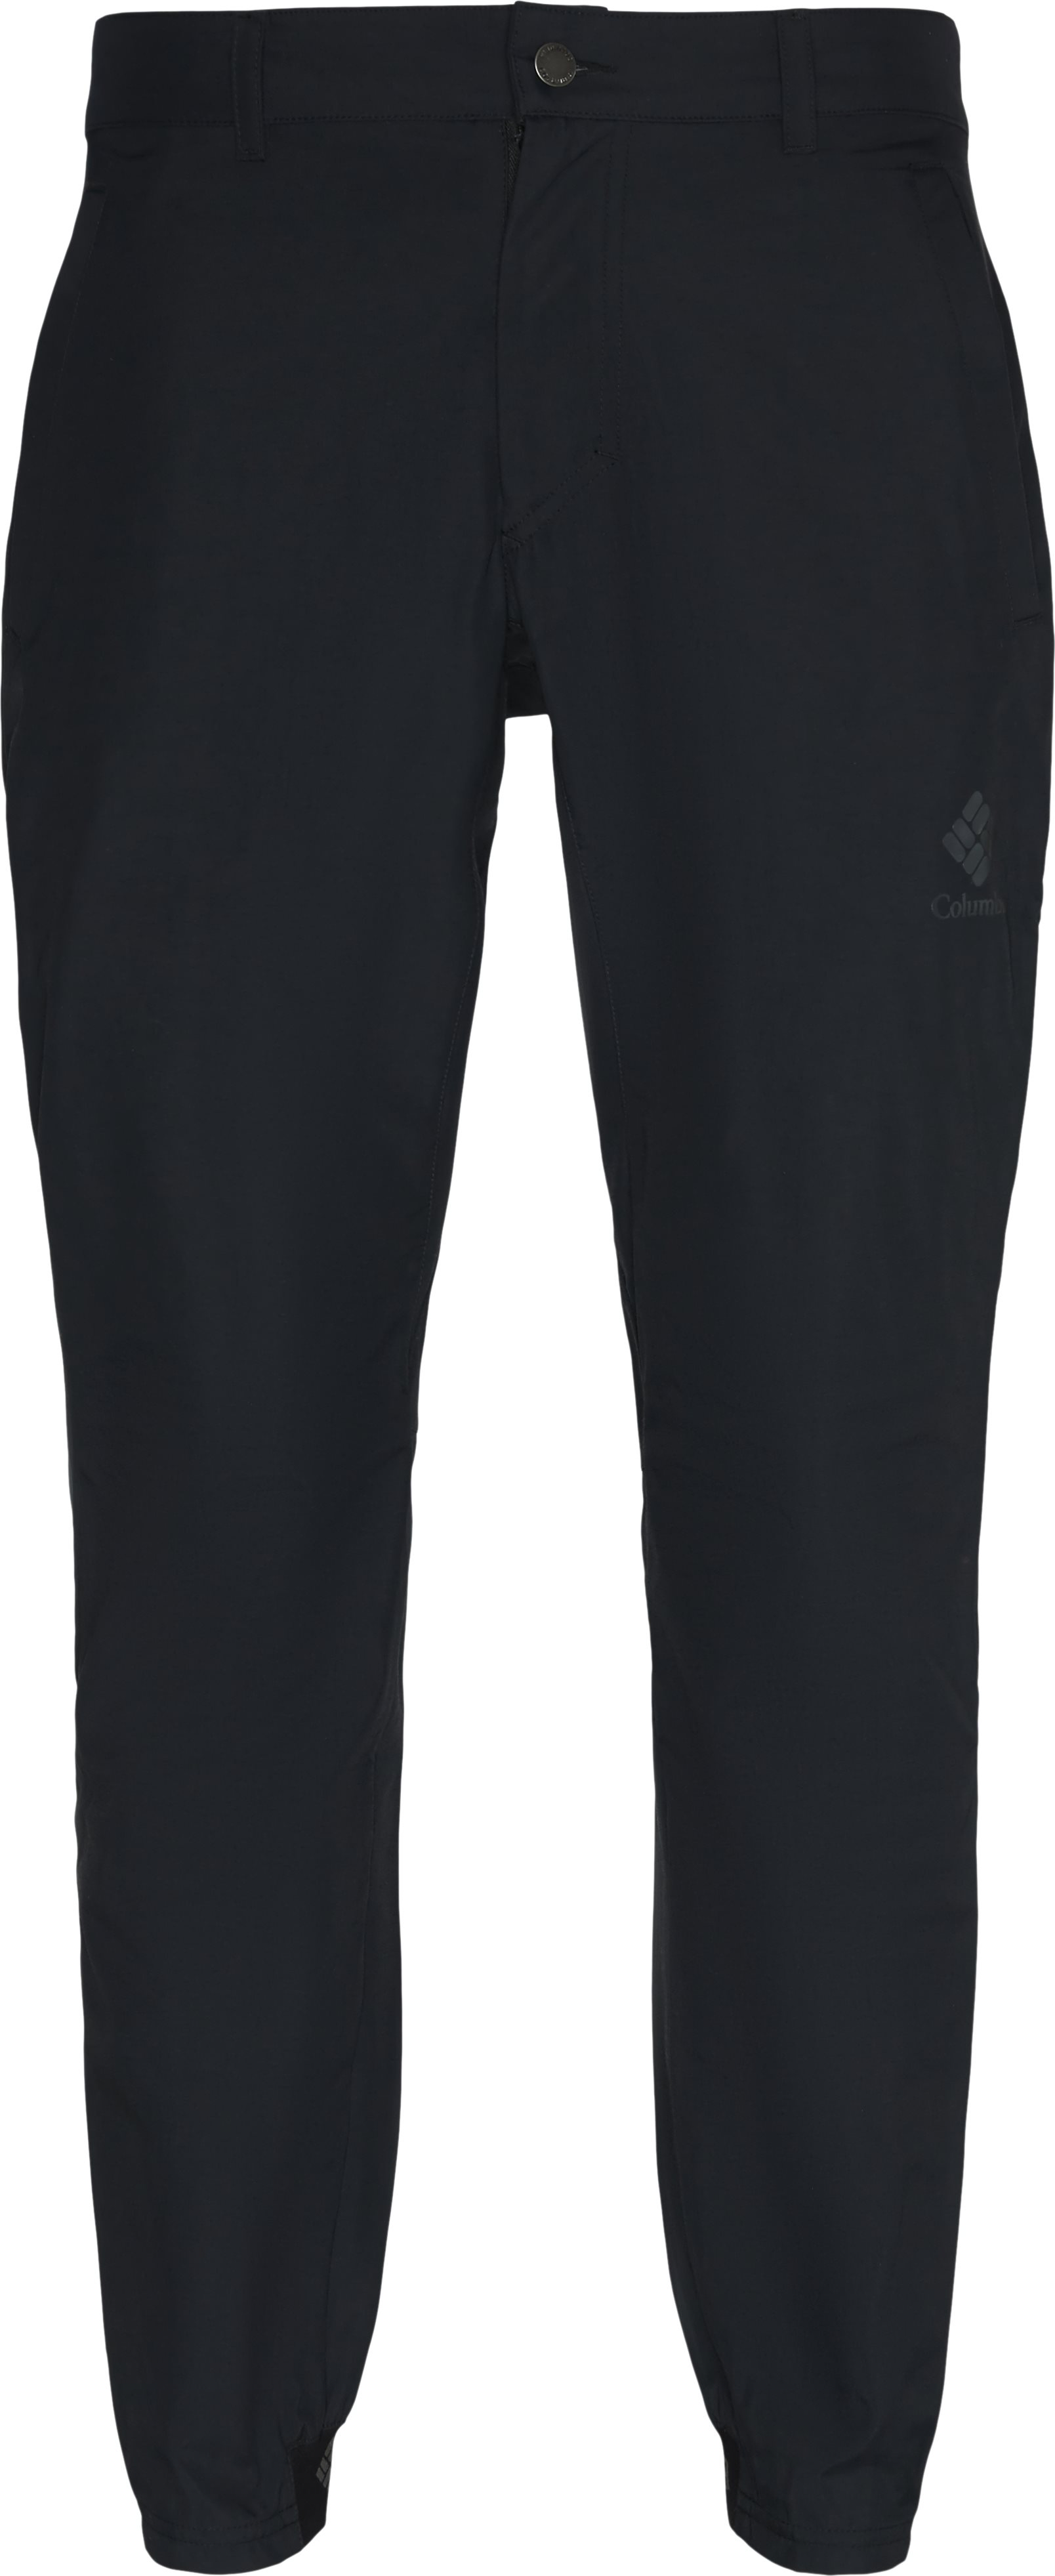 West End Pant - Bukser - Regular - Sort